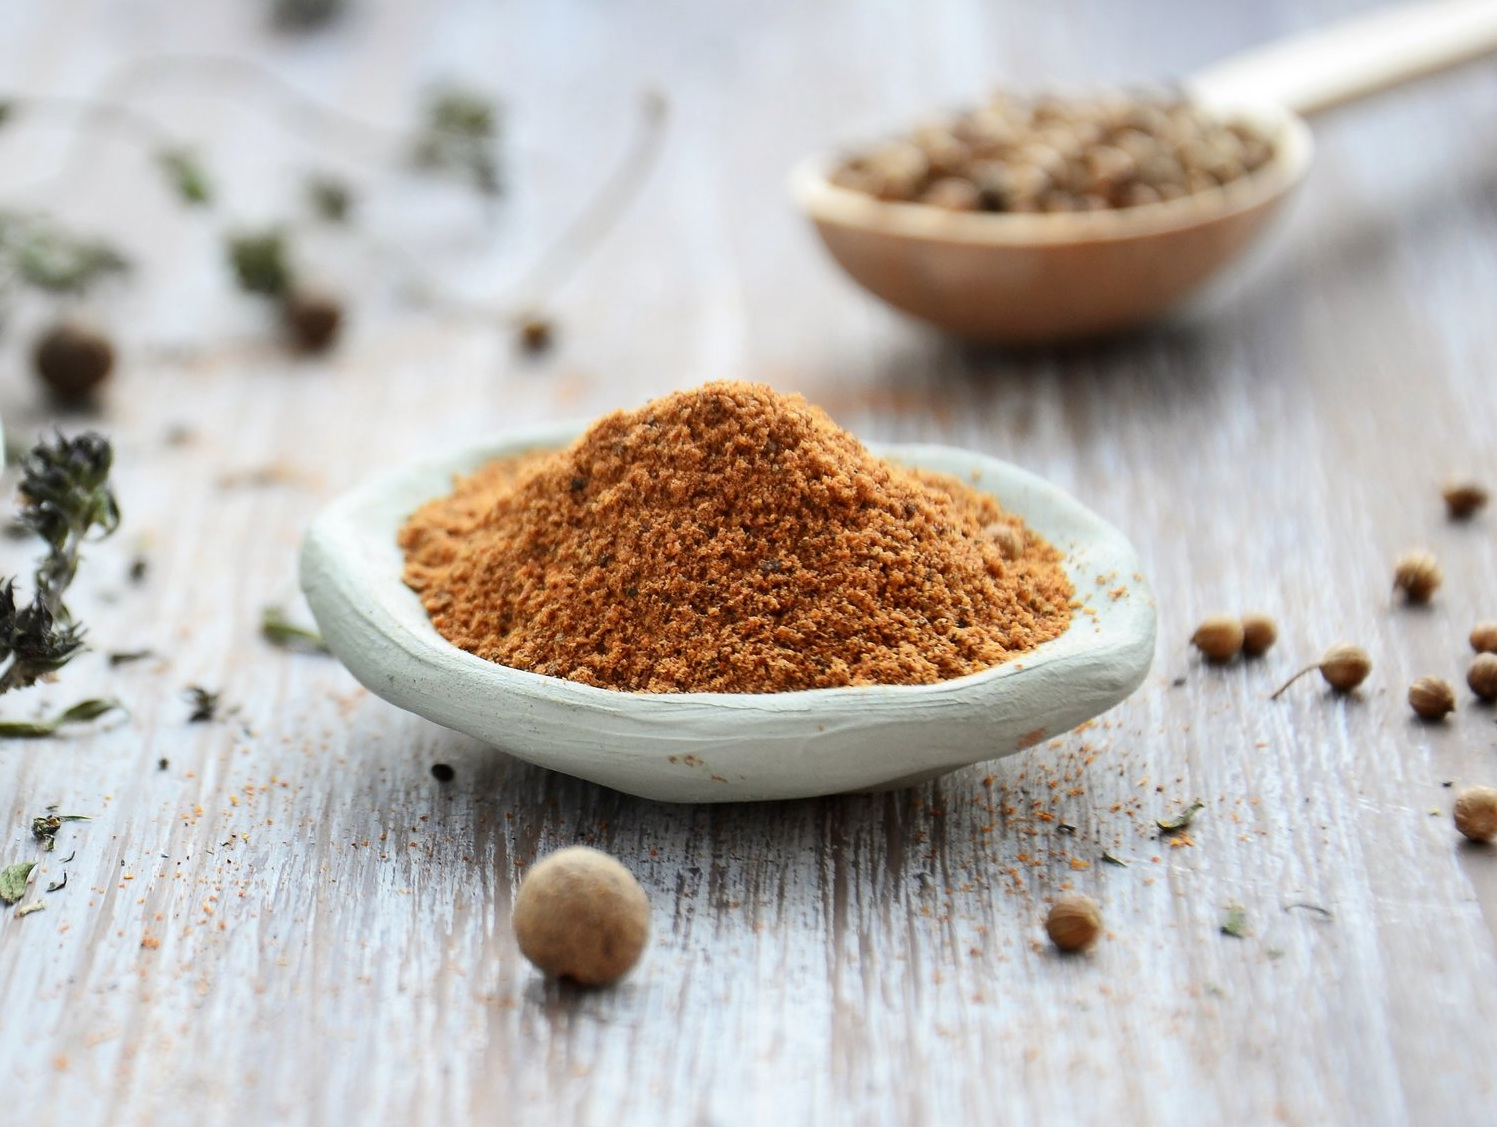 This Egyptian spice mix is a great addition to your herb rack.